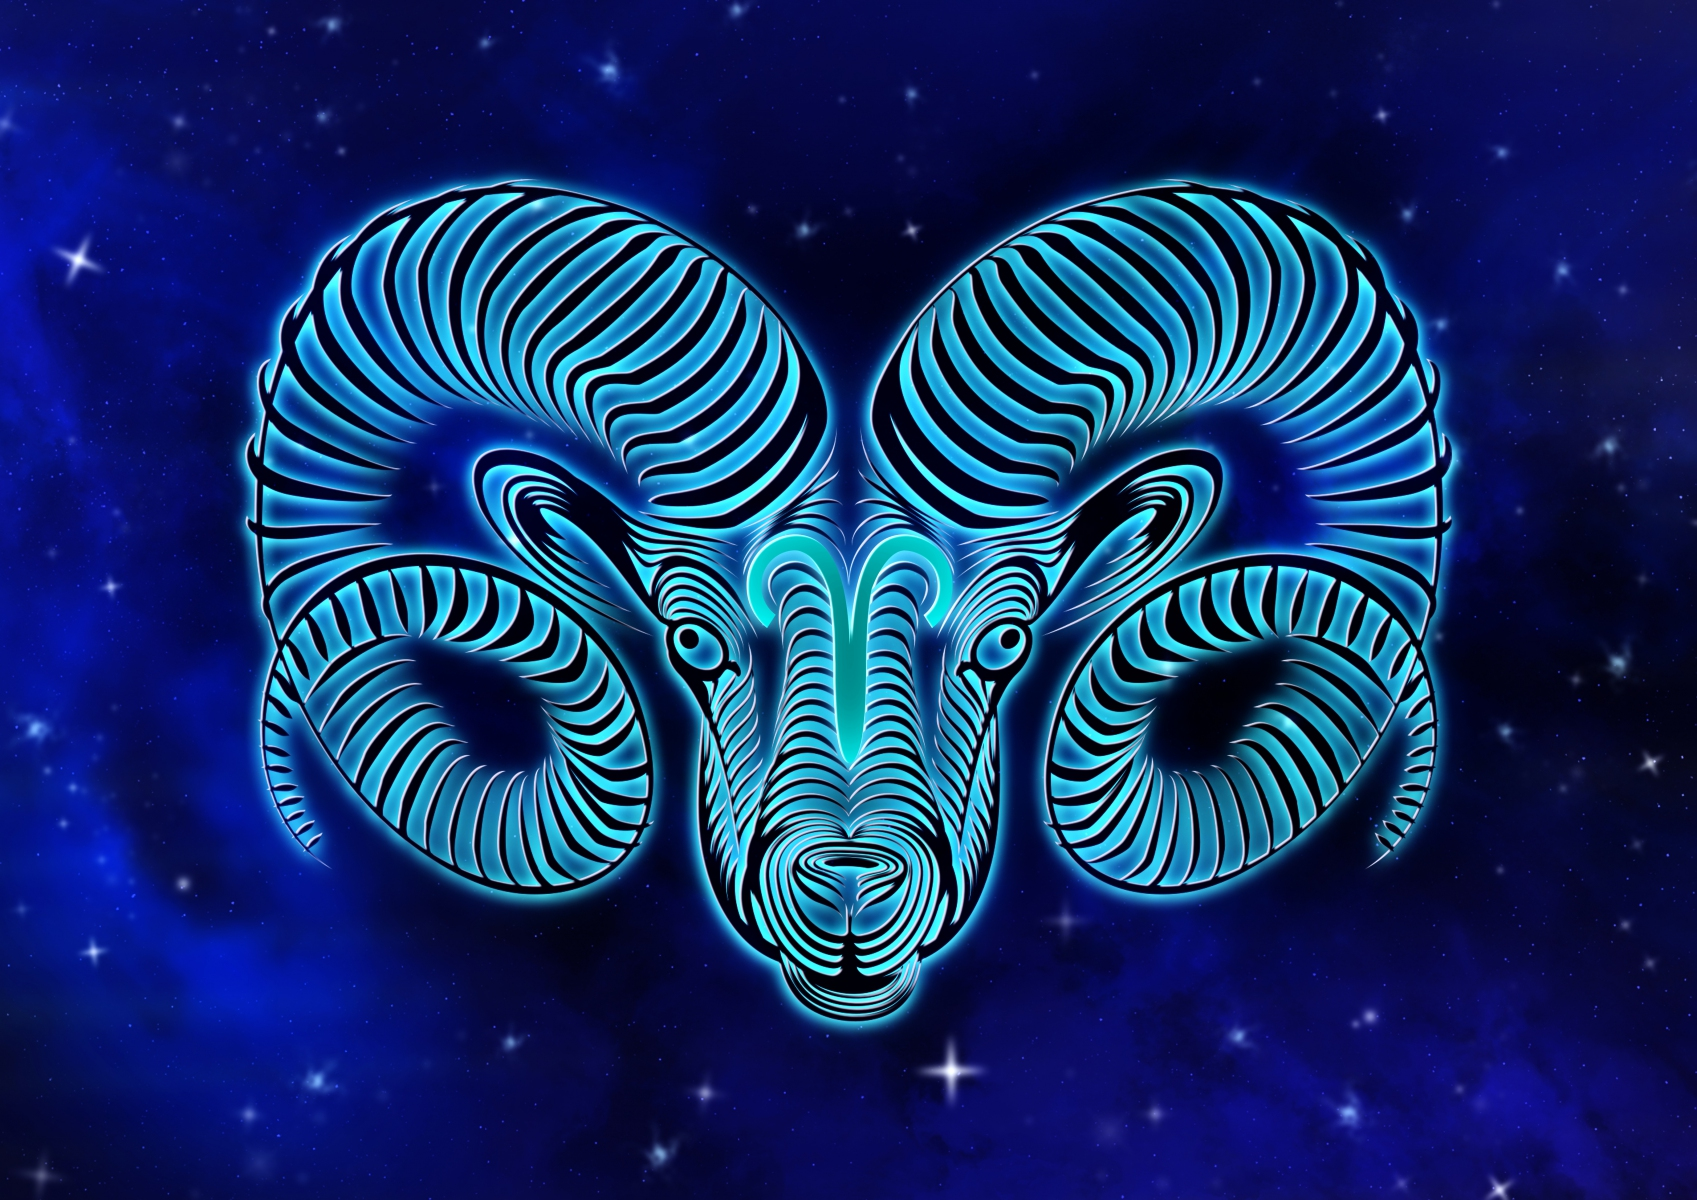 Astrological sign Aries - Aries in noble blue